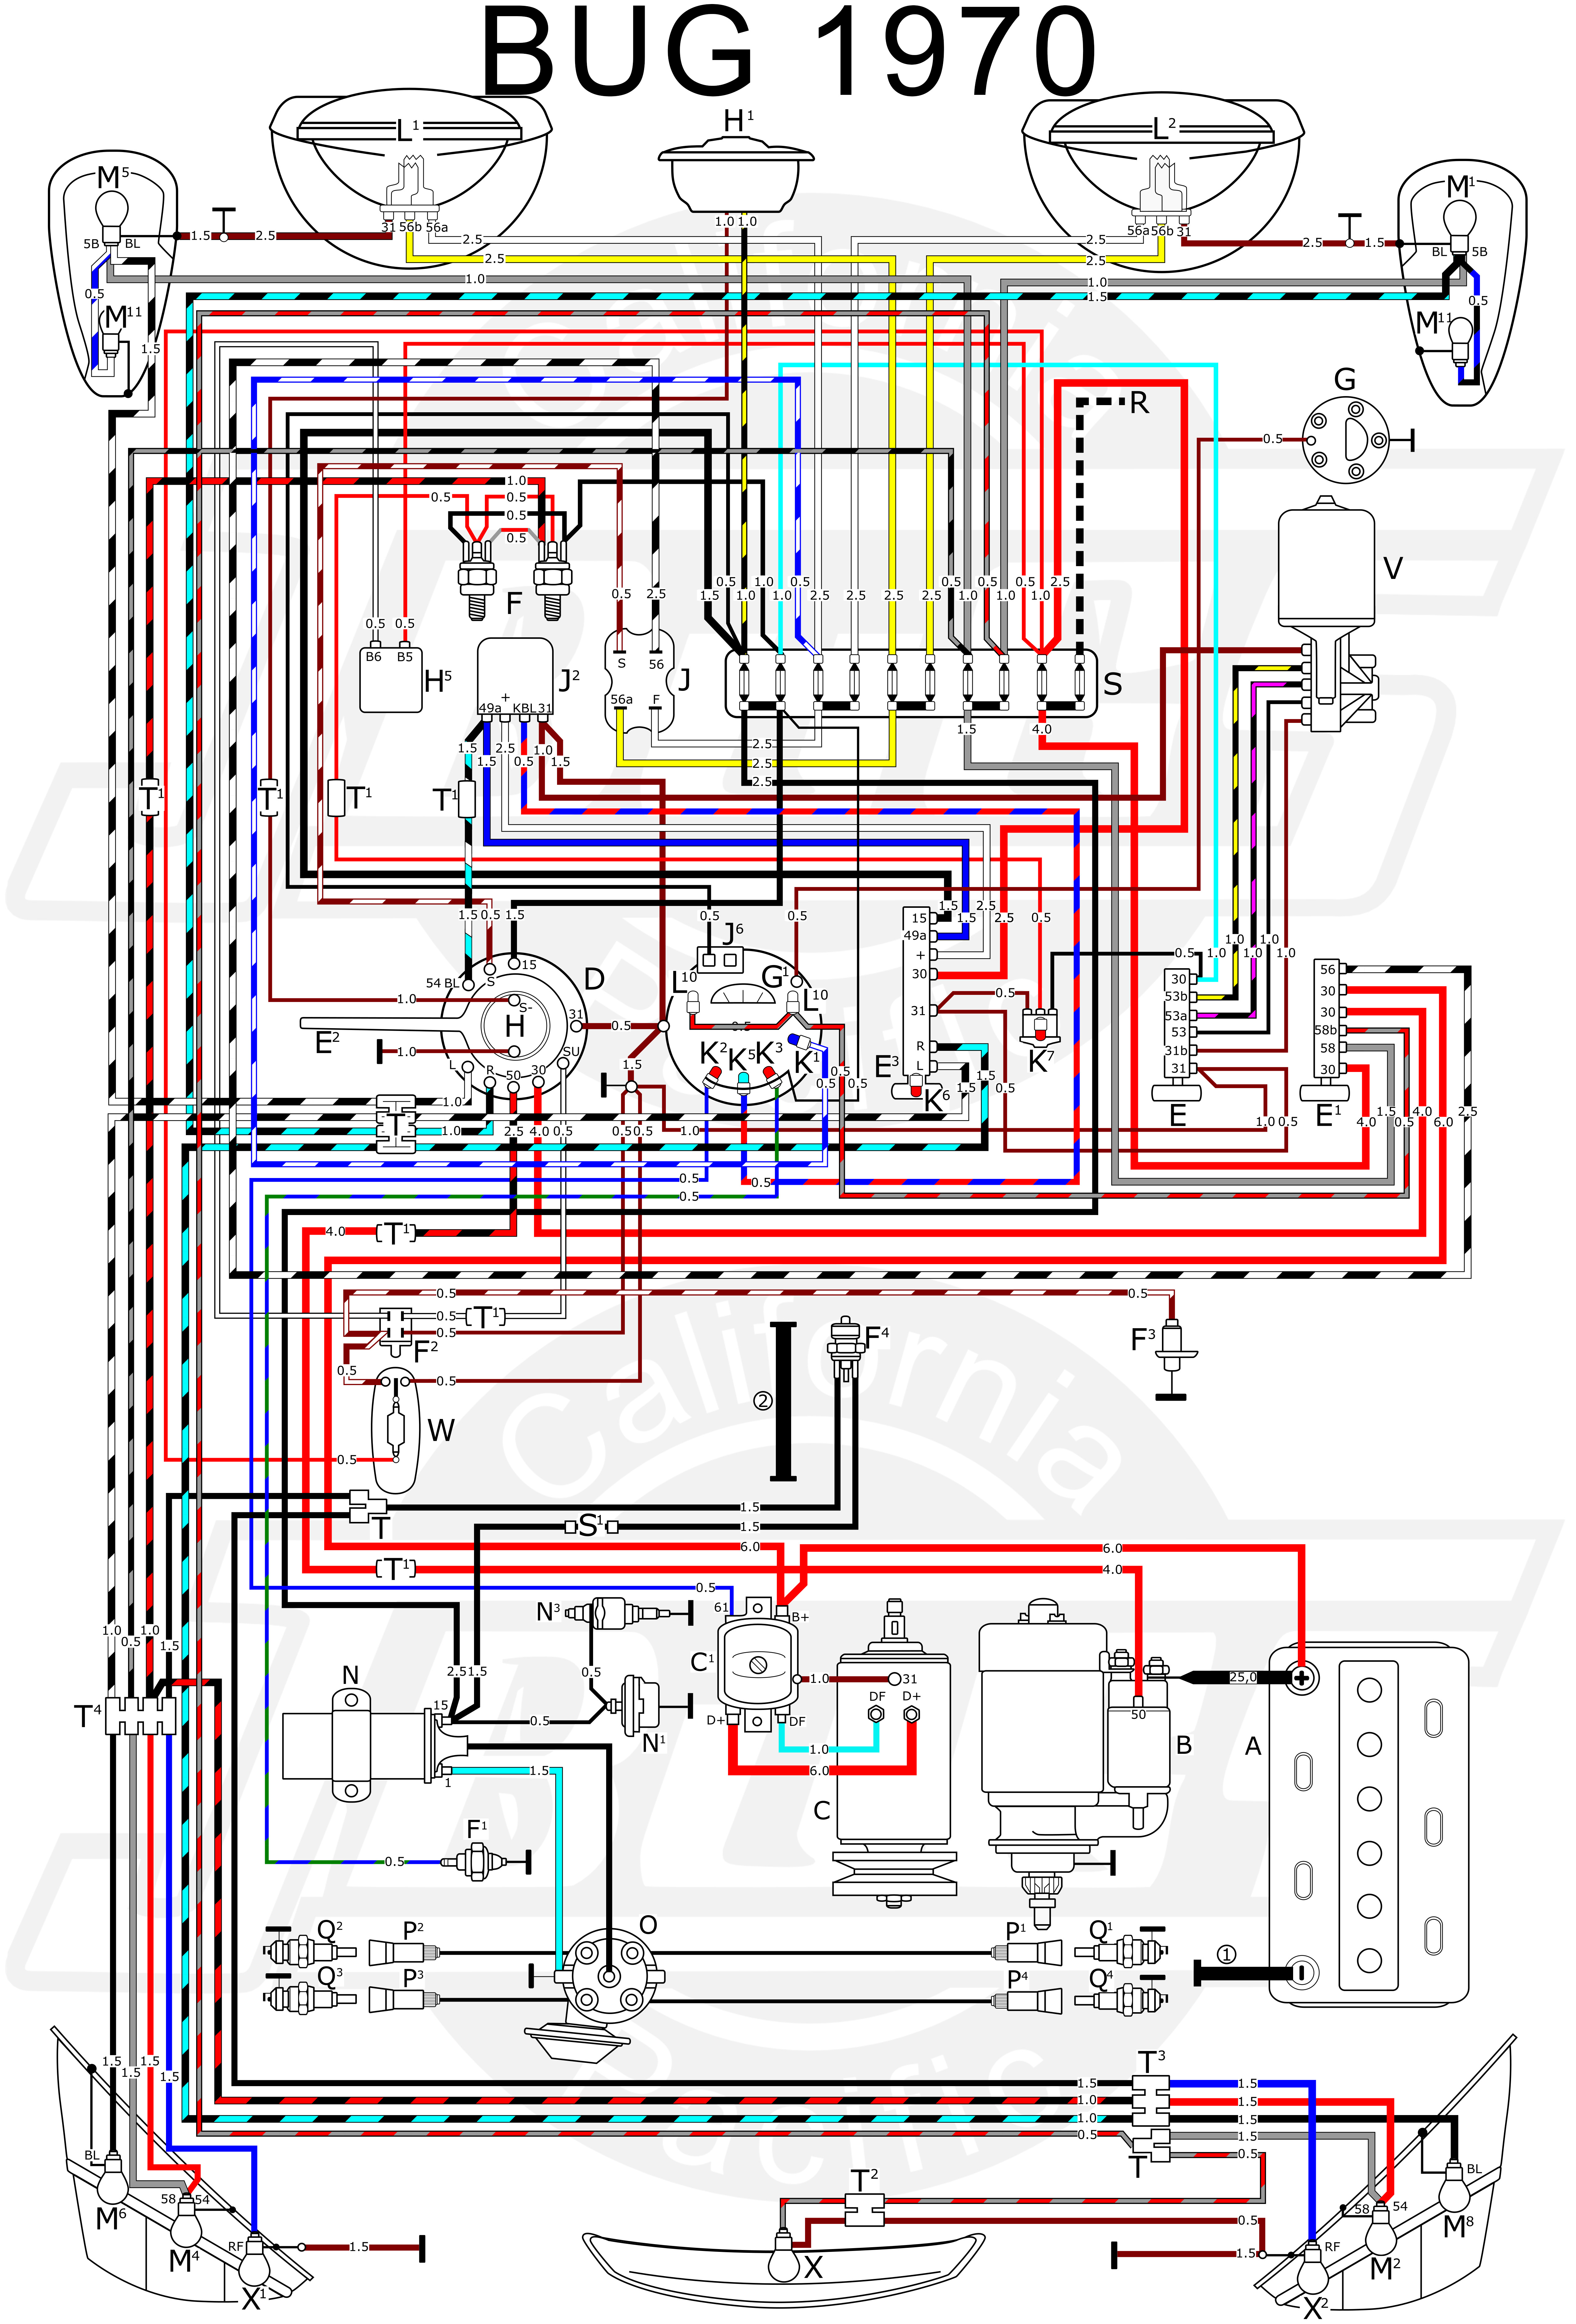 VW Bug 1970 Wiring Diagram vw beetle wiring diagram 71 wiring diagrams instruction 2001 vw beetle wiring diagram at mifinder.co